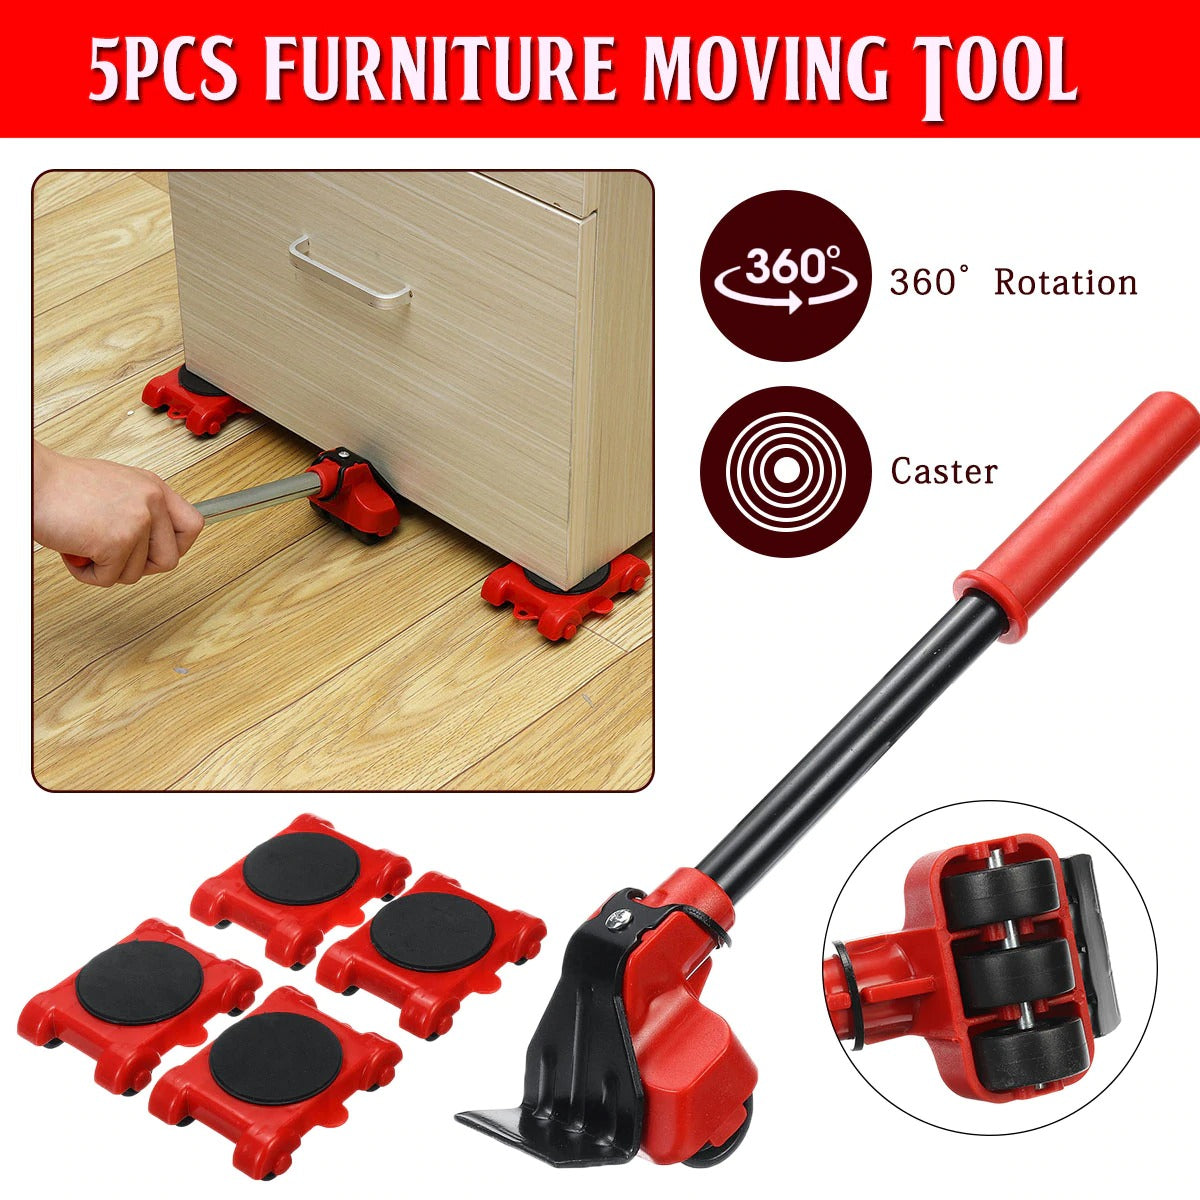 Furniture Lifter Tool